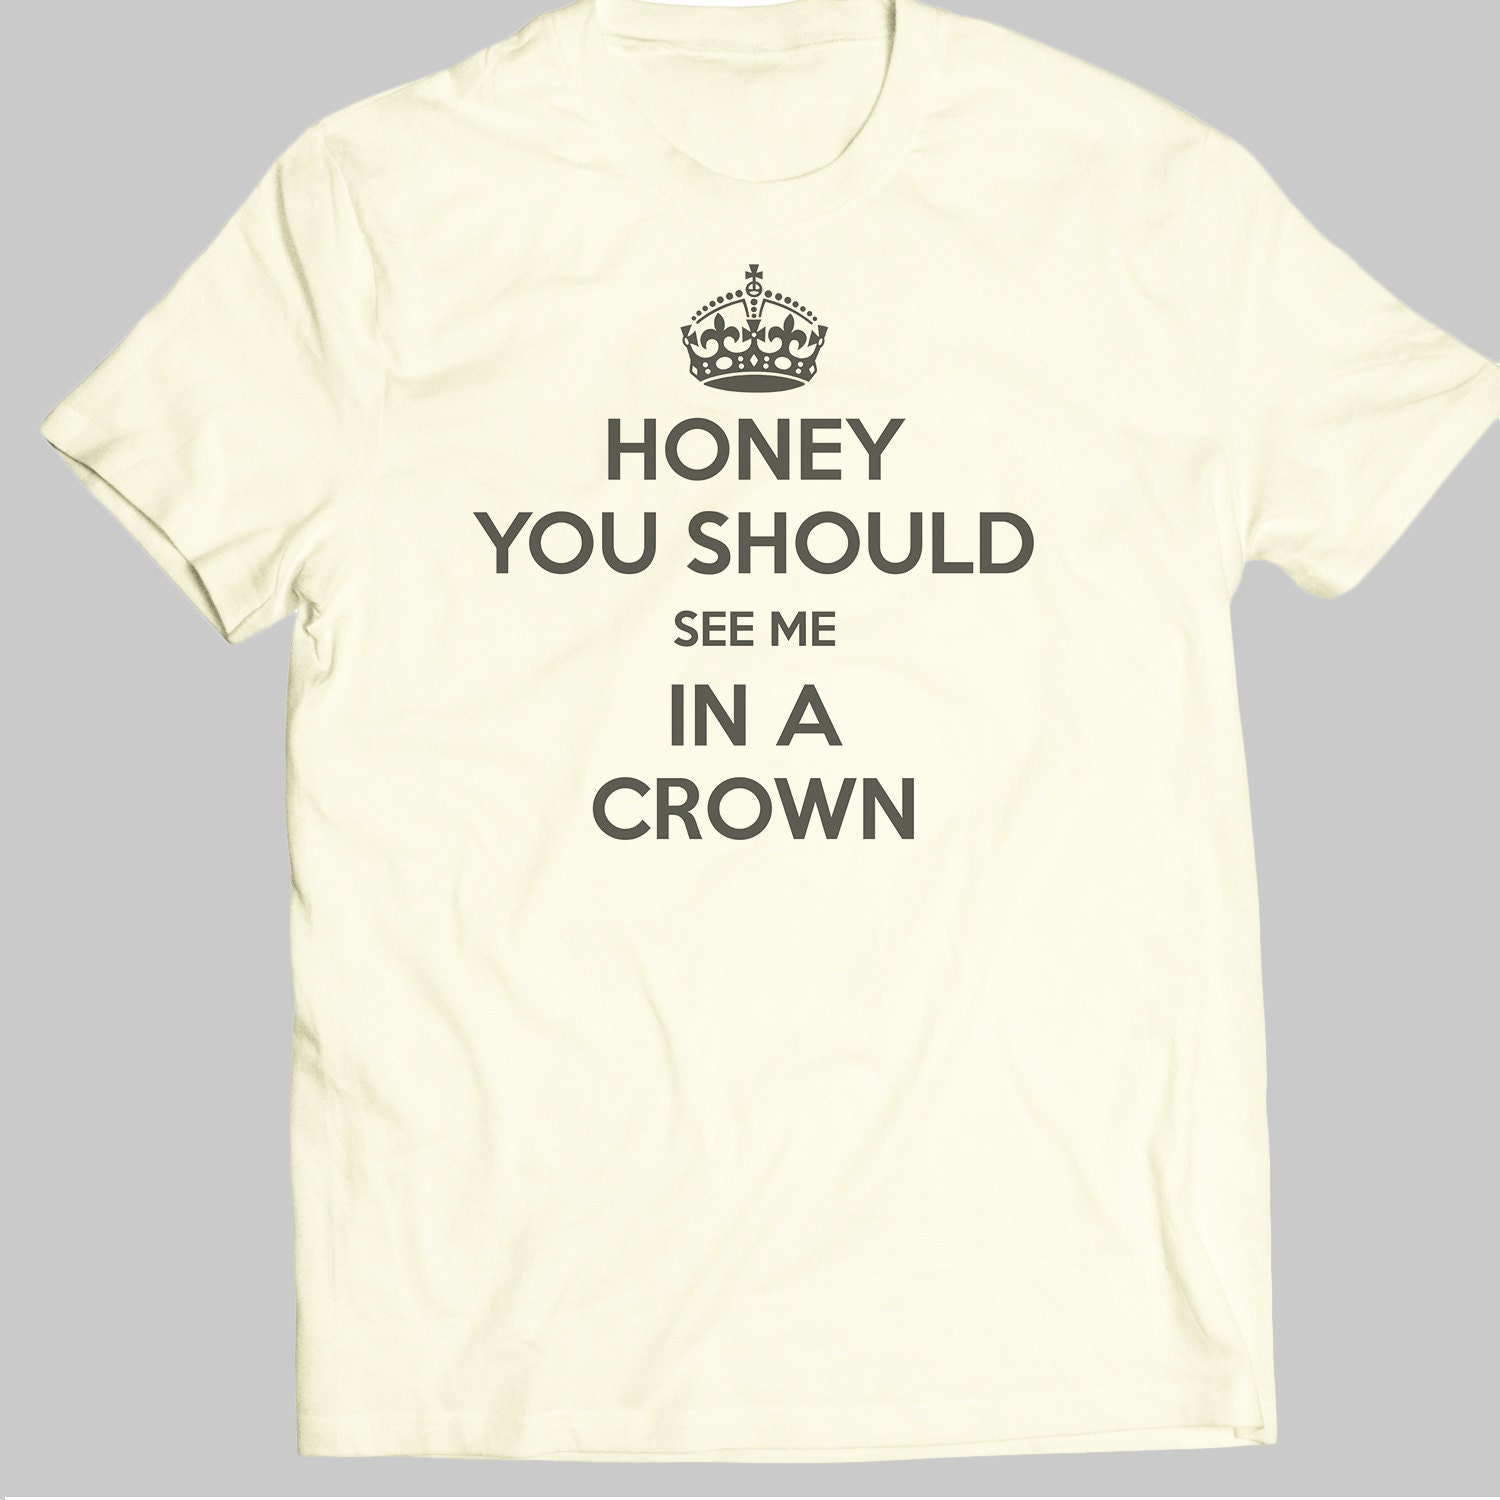 T-shirt design handmade - Honey You Should See Me In A Crown T Shirt Funny T Shirt Quote Print Design Handmade From Authentic Hq Material Igo 105 Perfcase